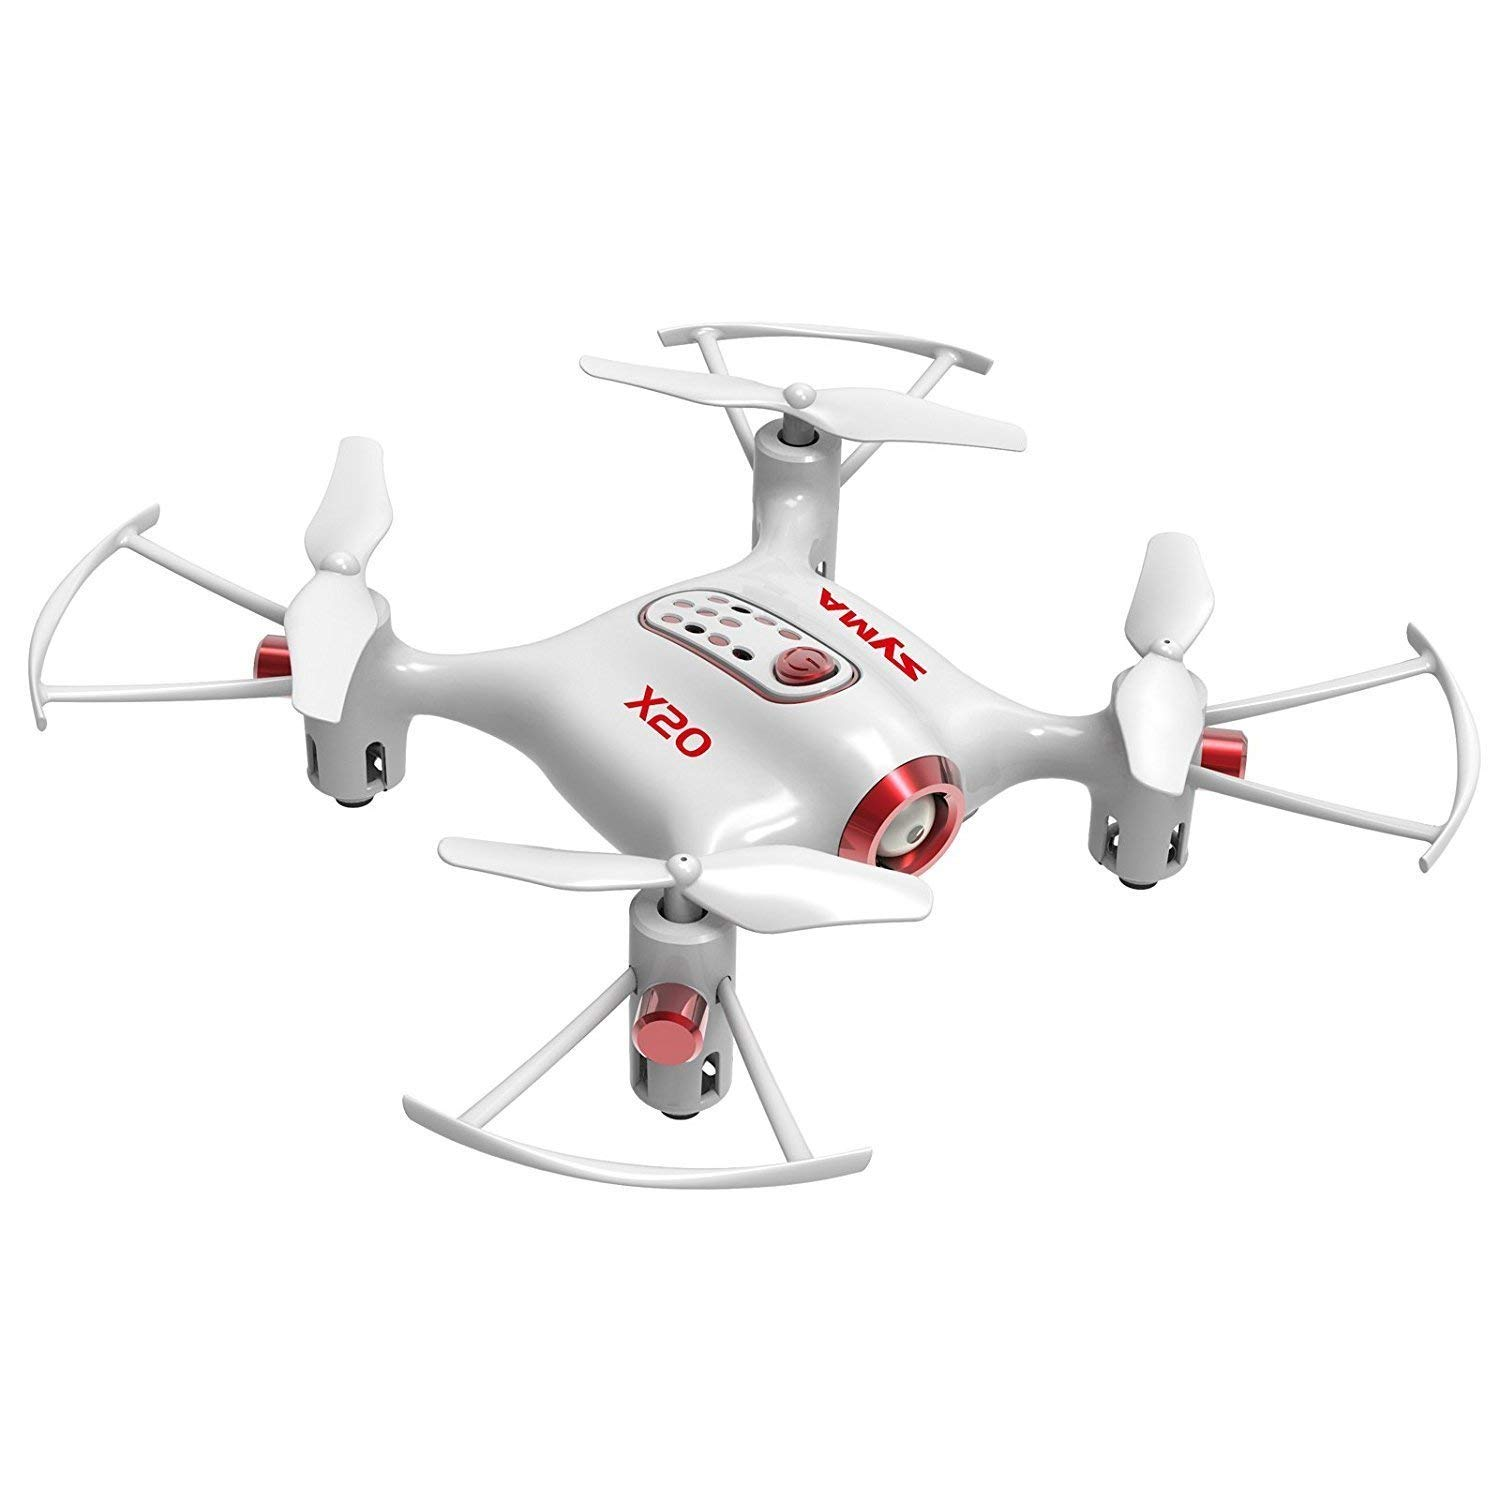 Cheerwing Syma X20 Pocket Drone 2.4Ghz Remote Control Mini RC Quadcopter with Altitude Hold And One Key Take-off Landing (bianca)